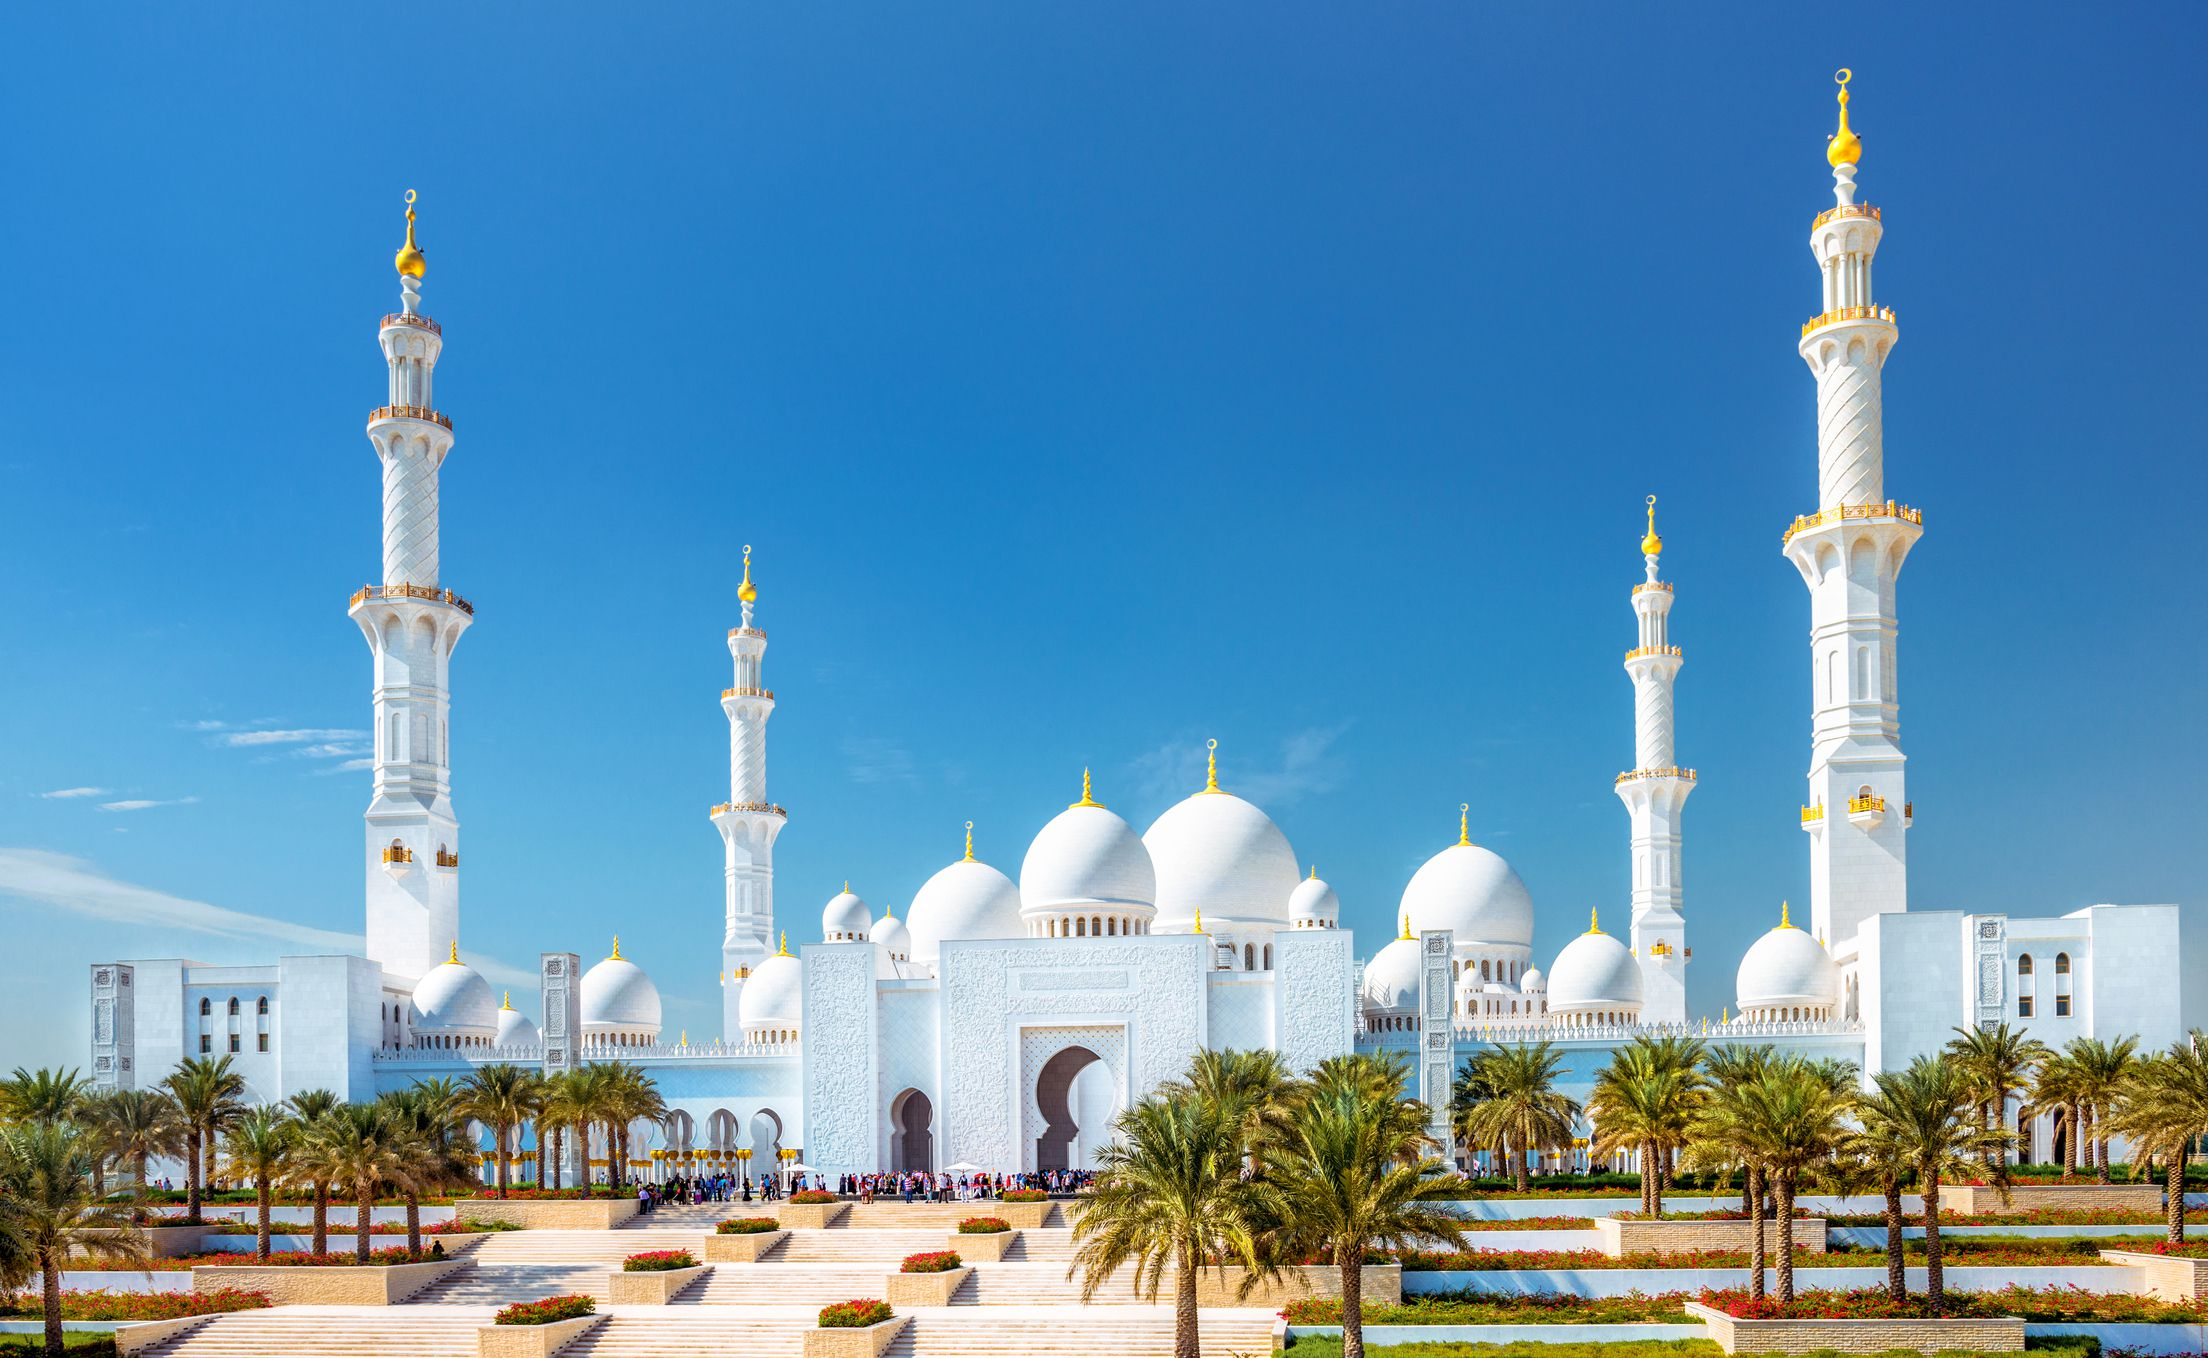 Car In Desert Hd Wallpaper Sheikh Zayed Grand Mosque The Complete Guide